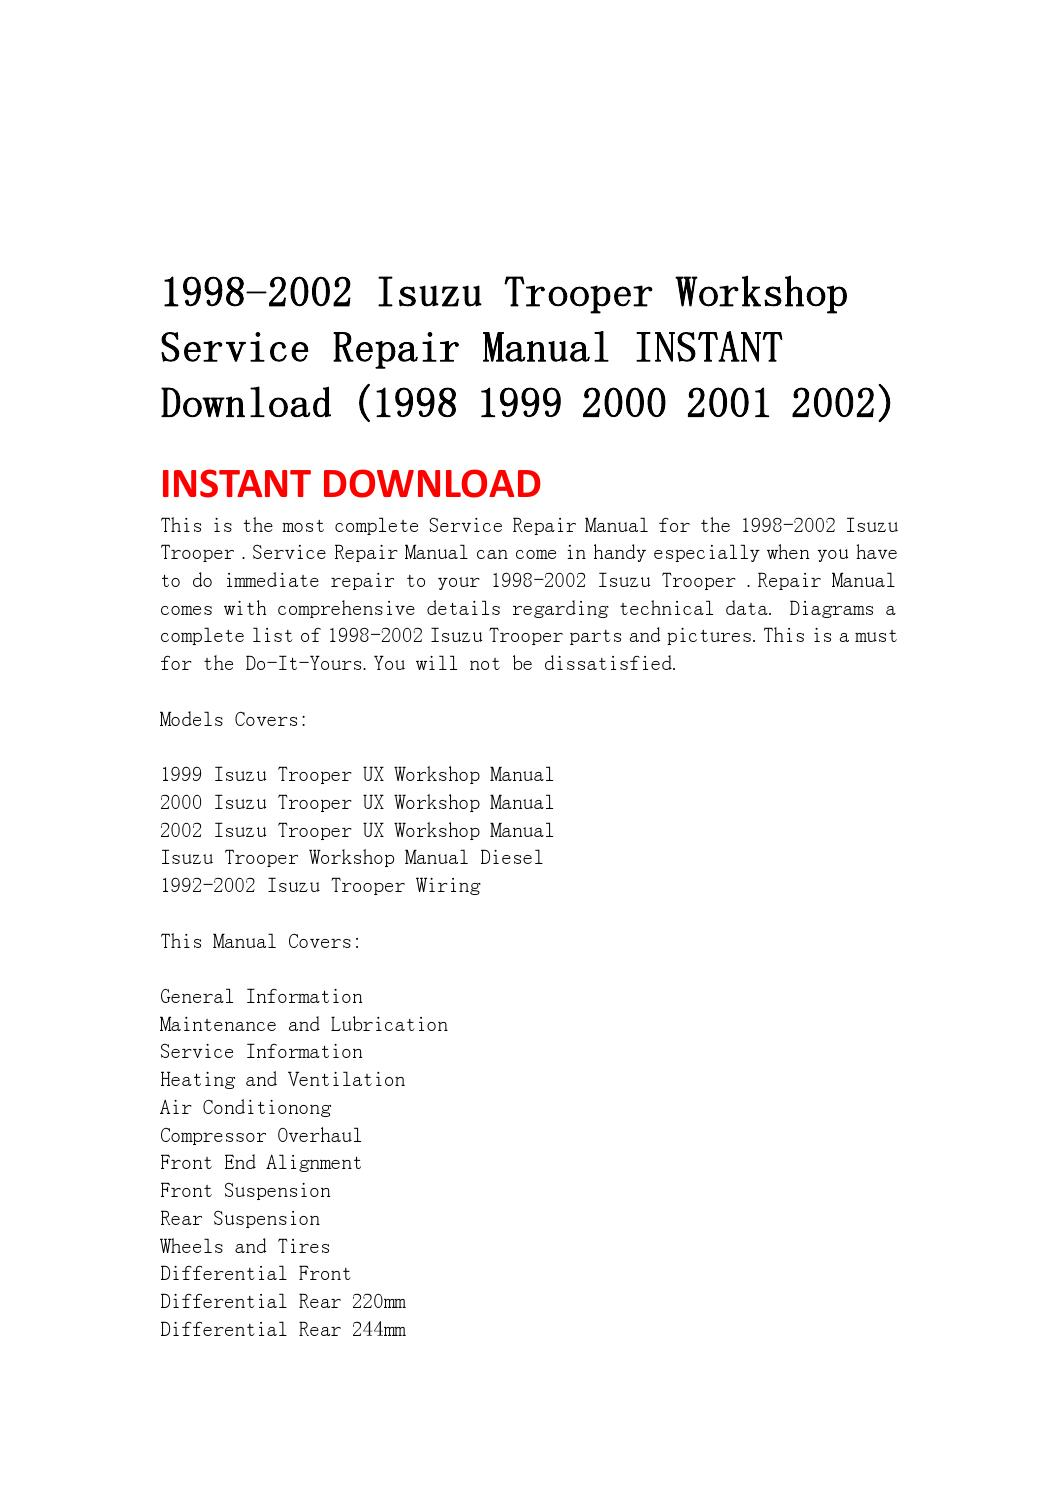 1998 2002 isuzu trooper workshop service repair manual instant download ( 1998 1999 2000 2001 2002) by jnshefmsnef ksefn - issuu